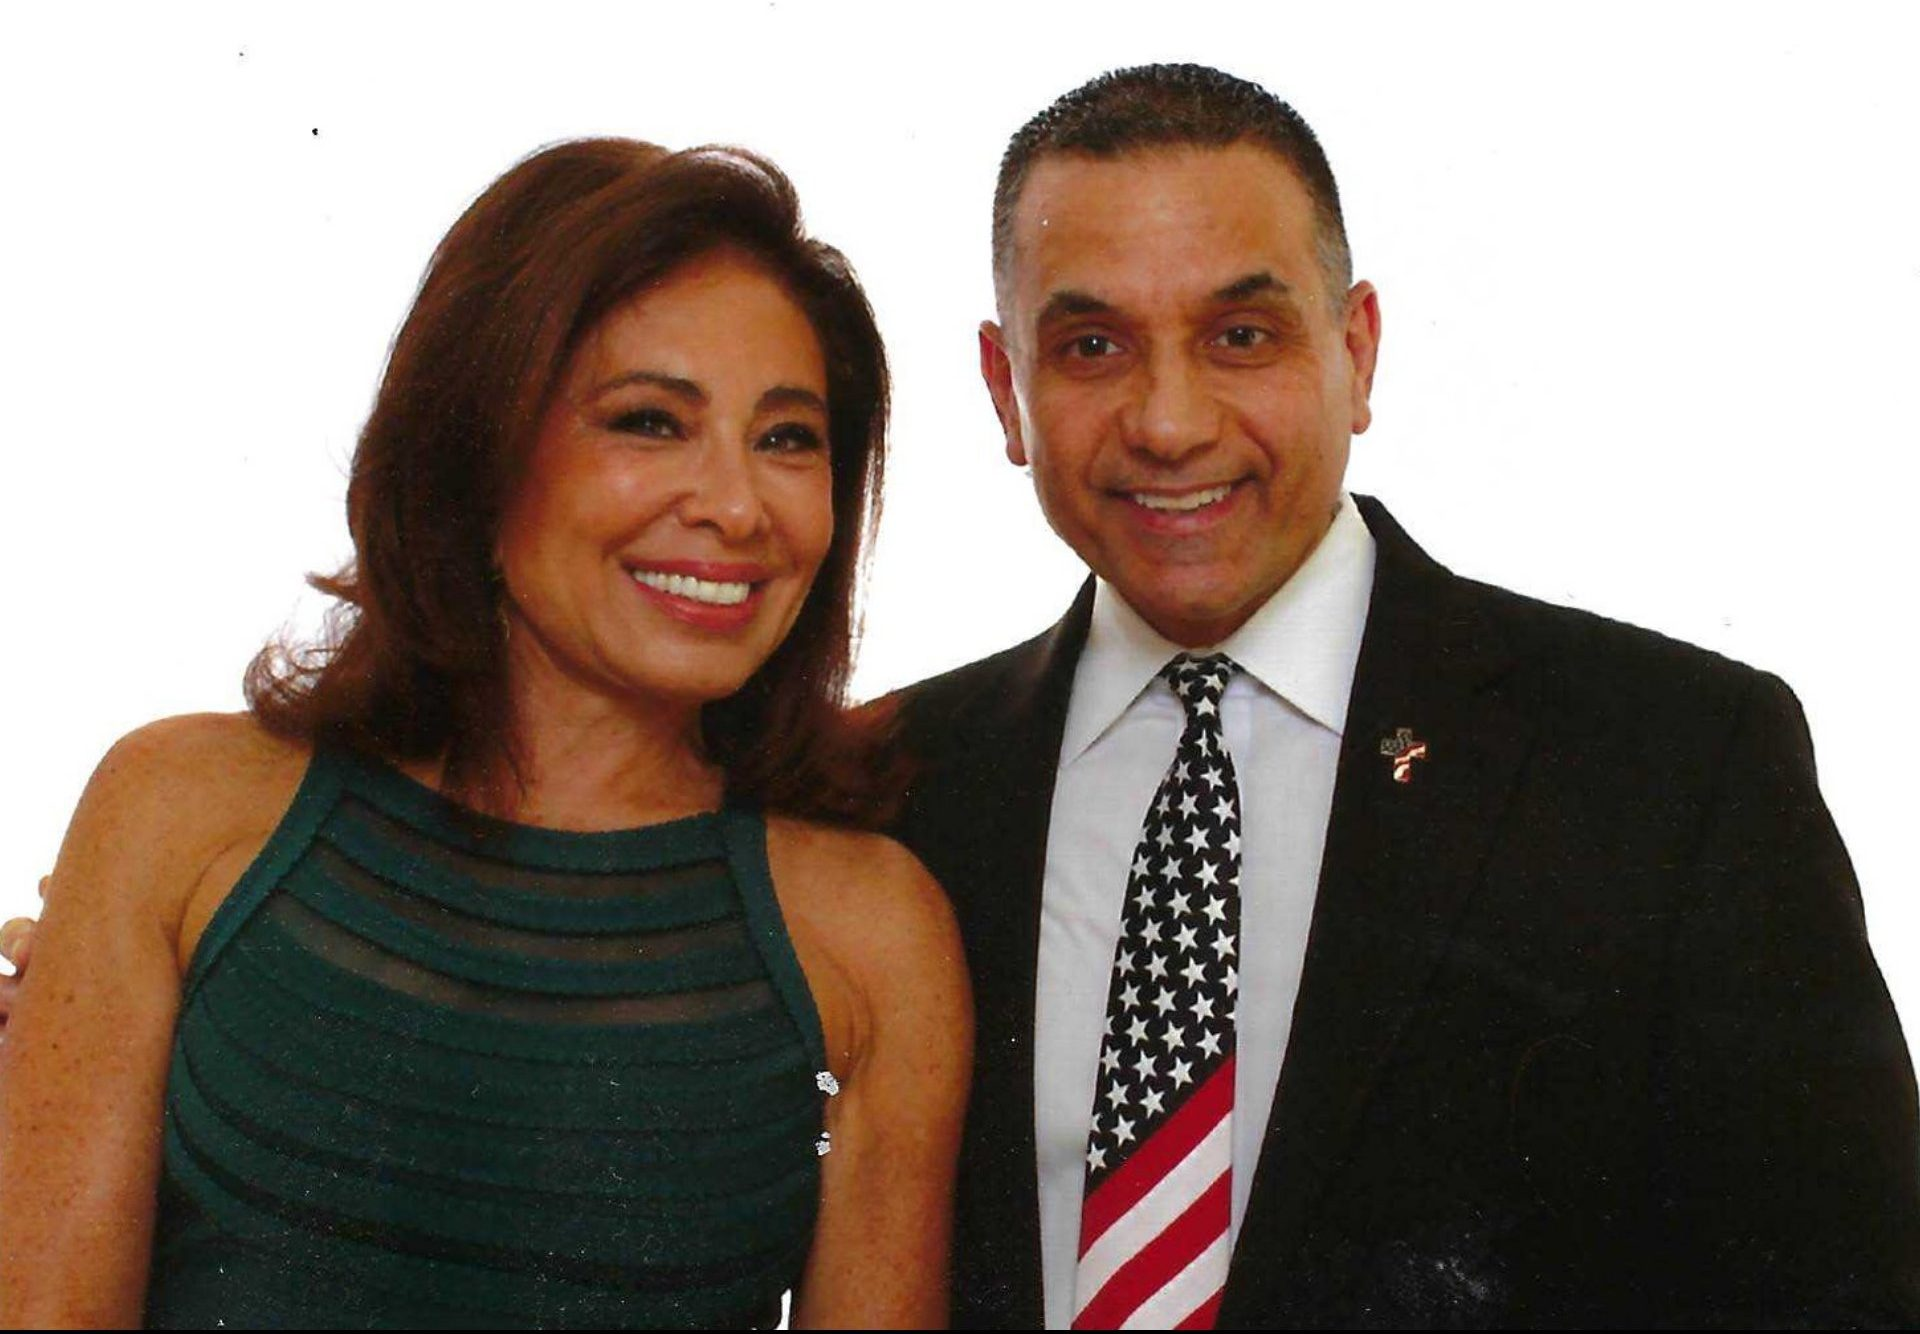 Judge Jeanine Pirro & John Di Lemme, Founder of the Conservative Business Journal